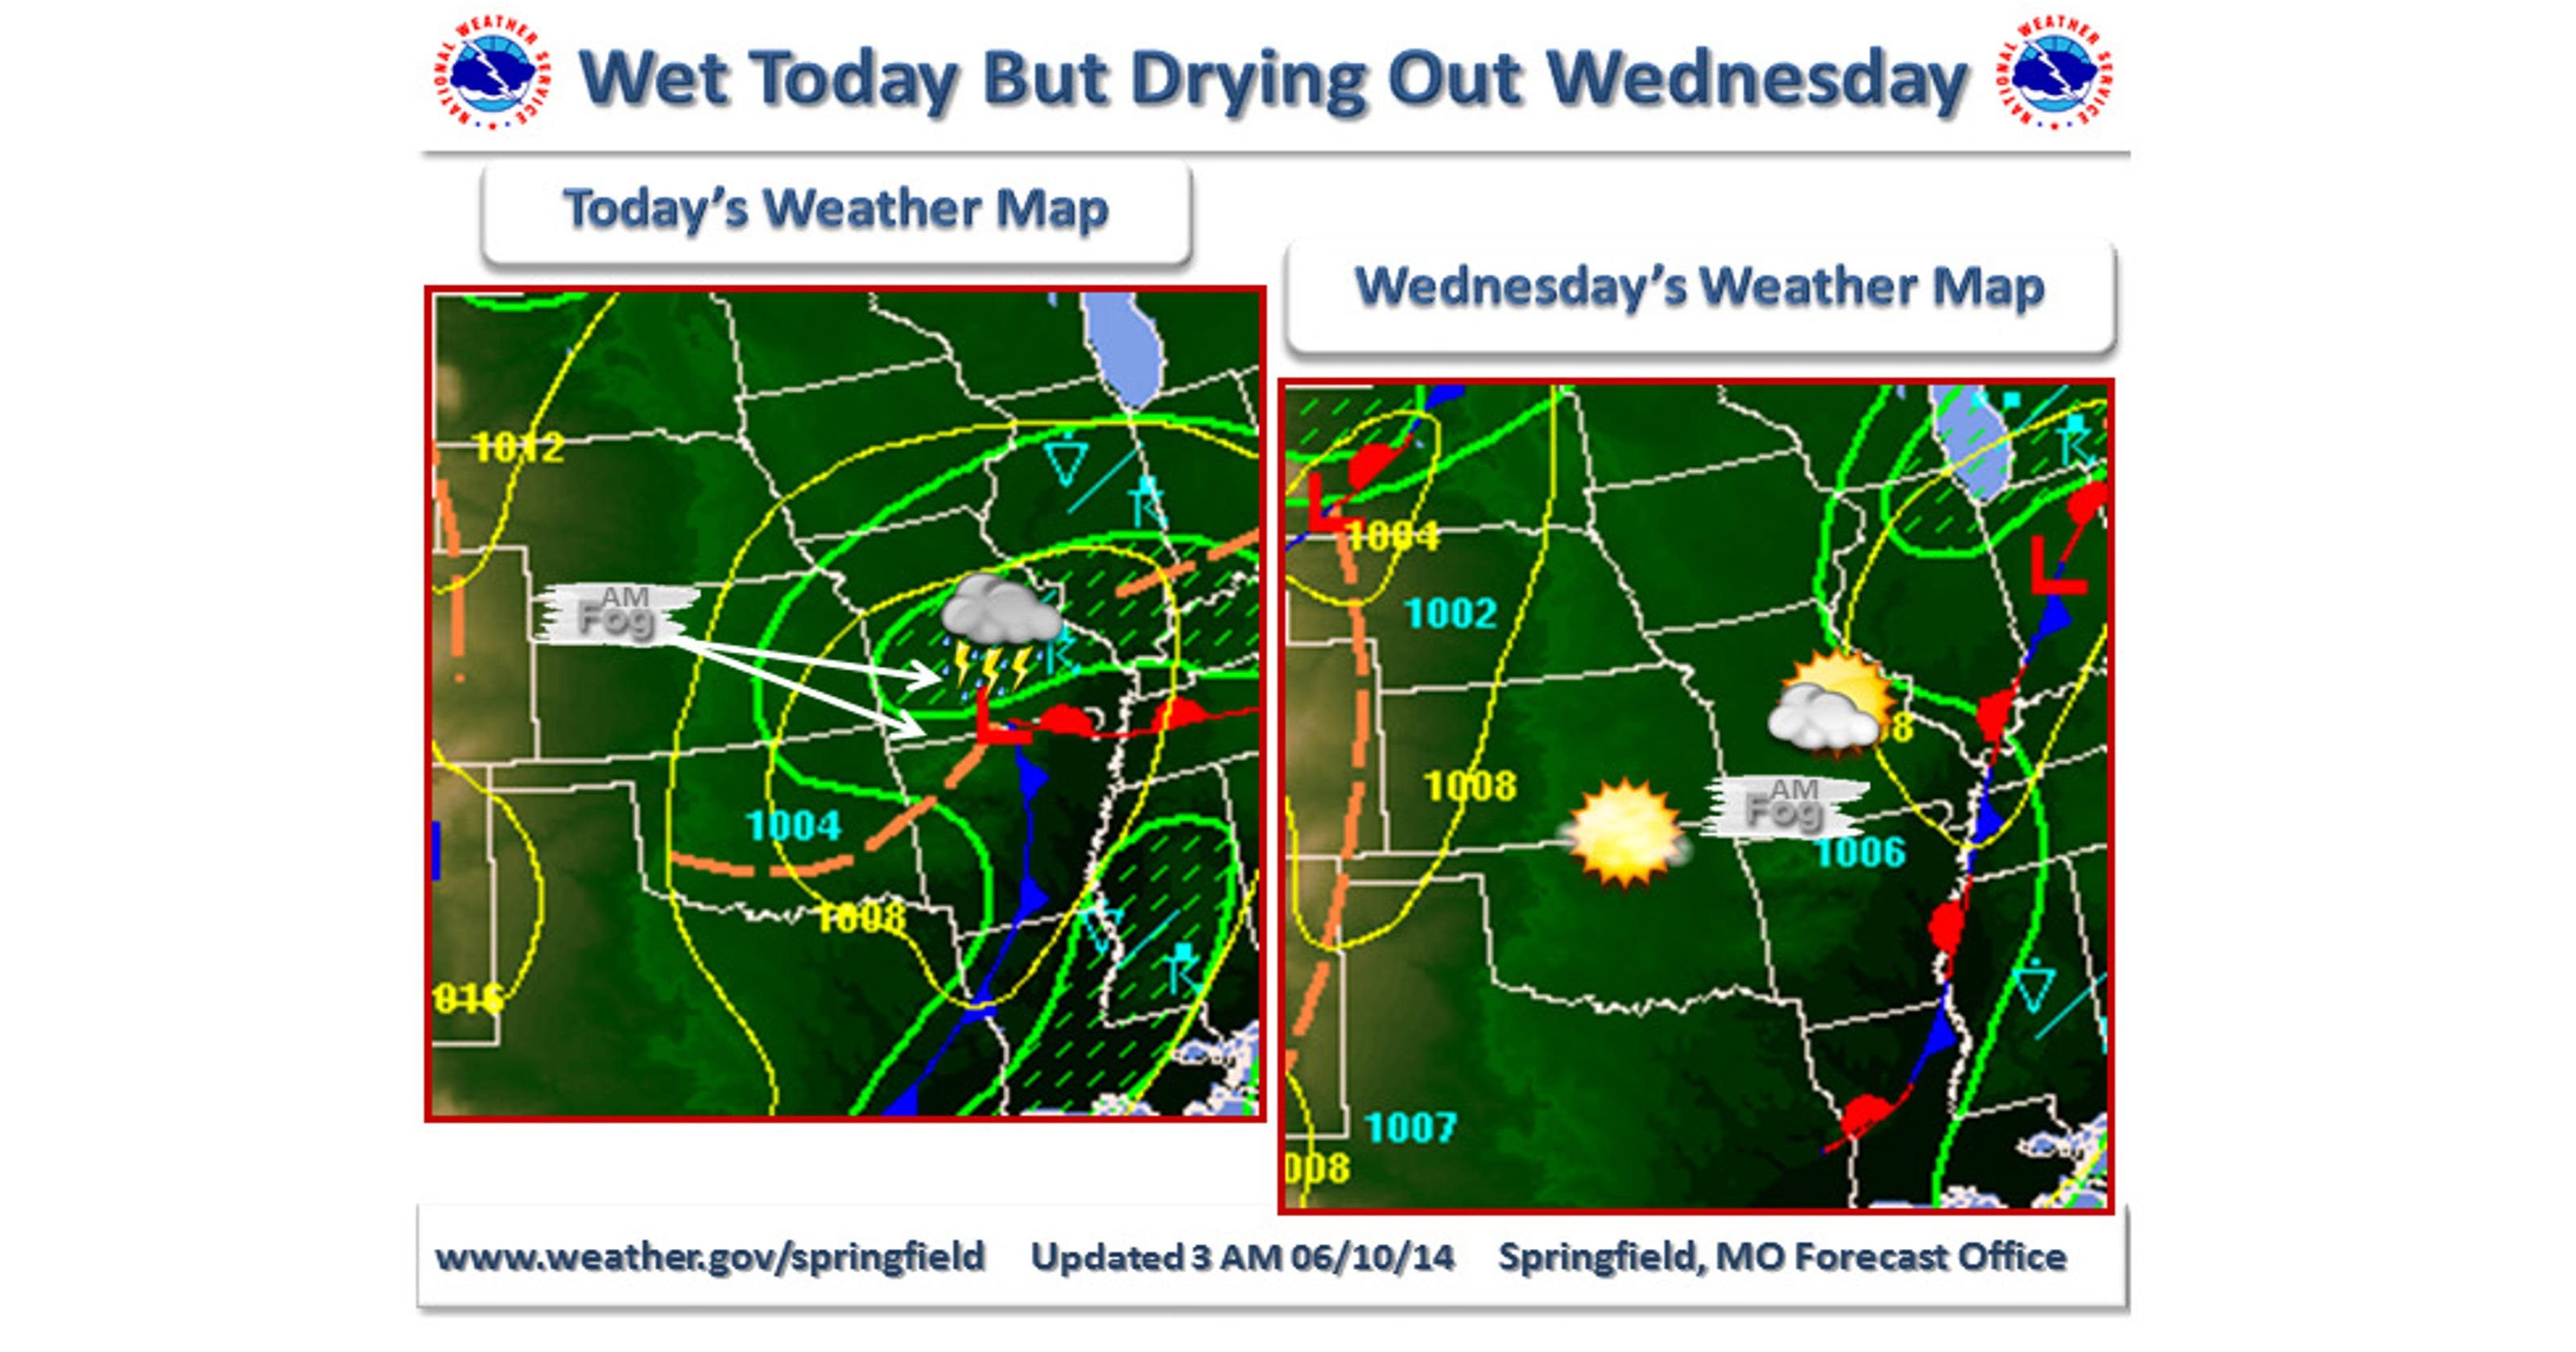 Rain Today But Sun Forecast For Wednesday